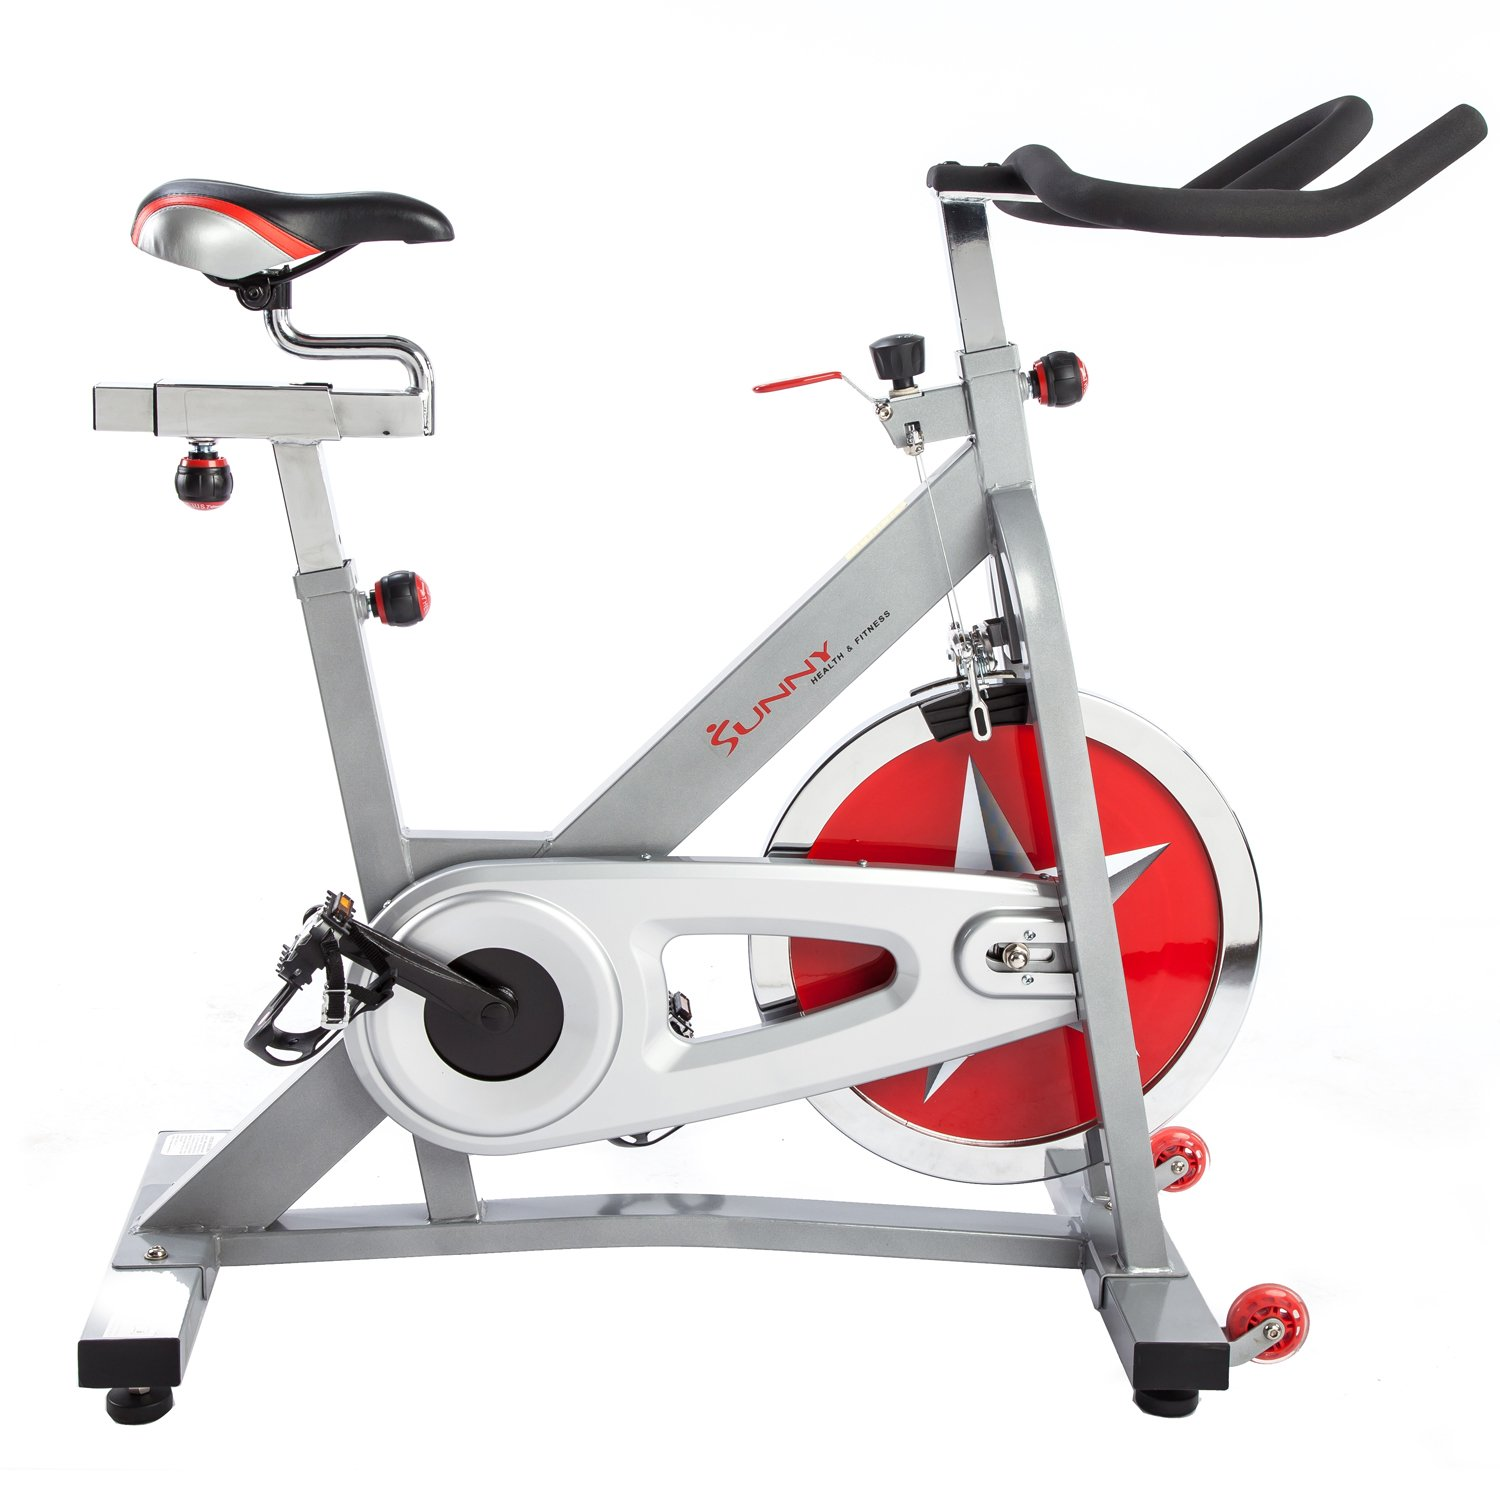 Exercise bike reviews 2018 the best spin bikes and for Indoor cycle design